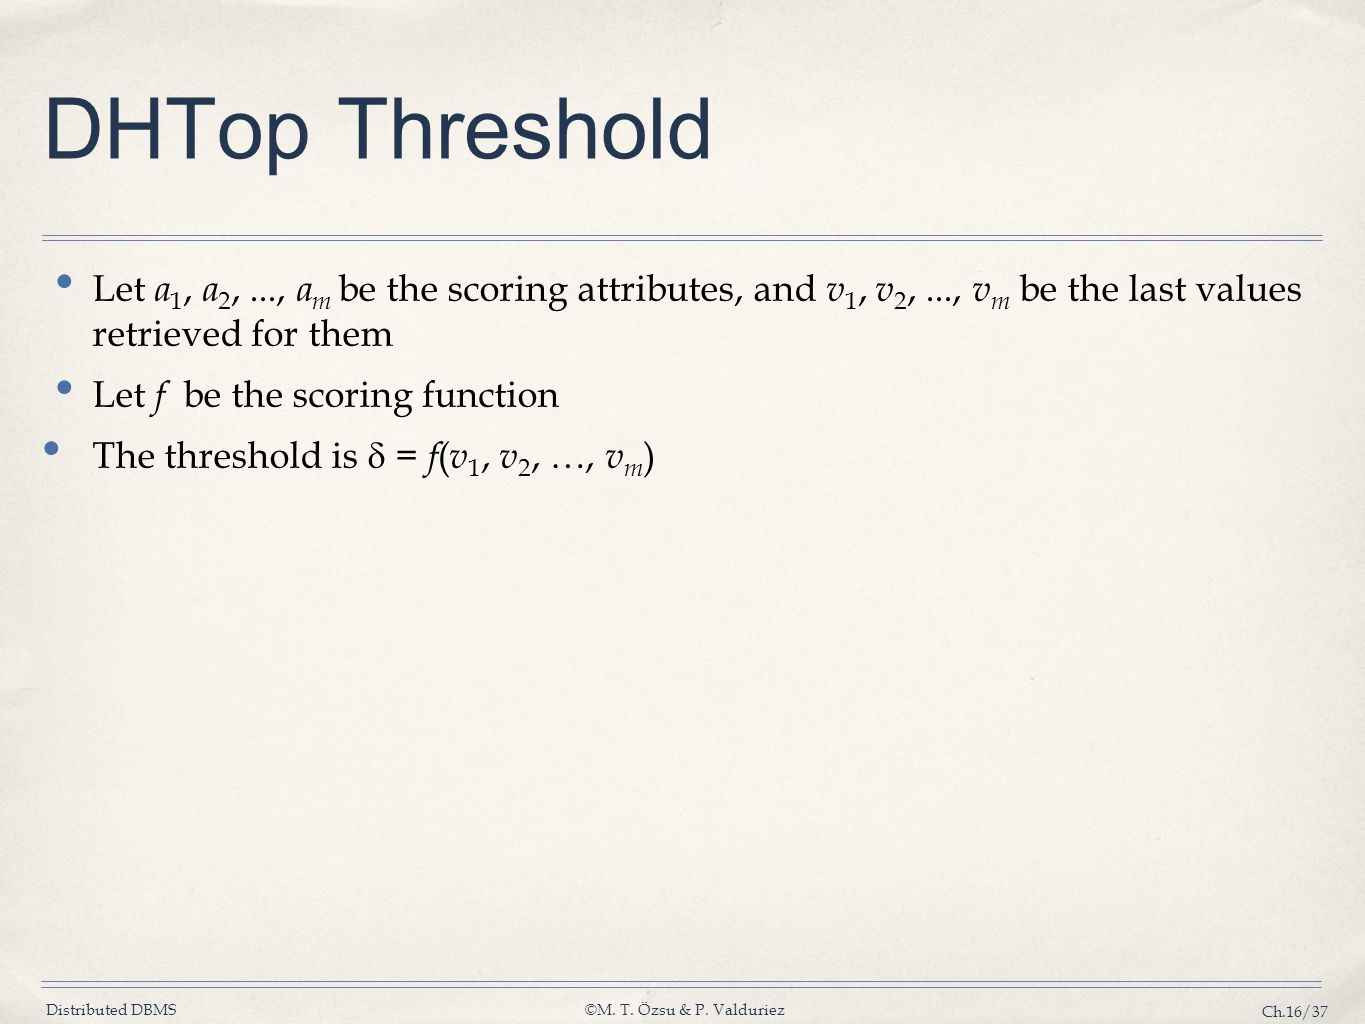 DHTop Threshold Let a1, a2, ..., am be the scoring attributes, and v1, v2, ..., vm be the last values retrieved for them.